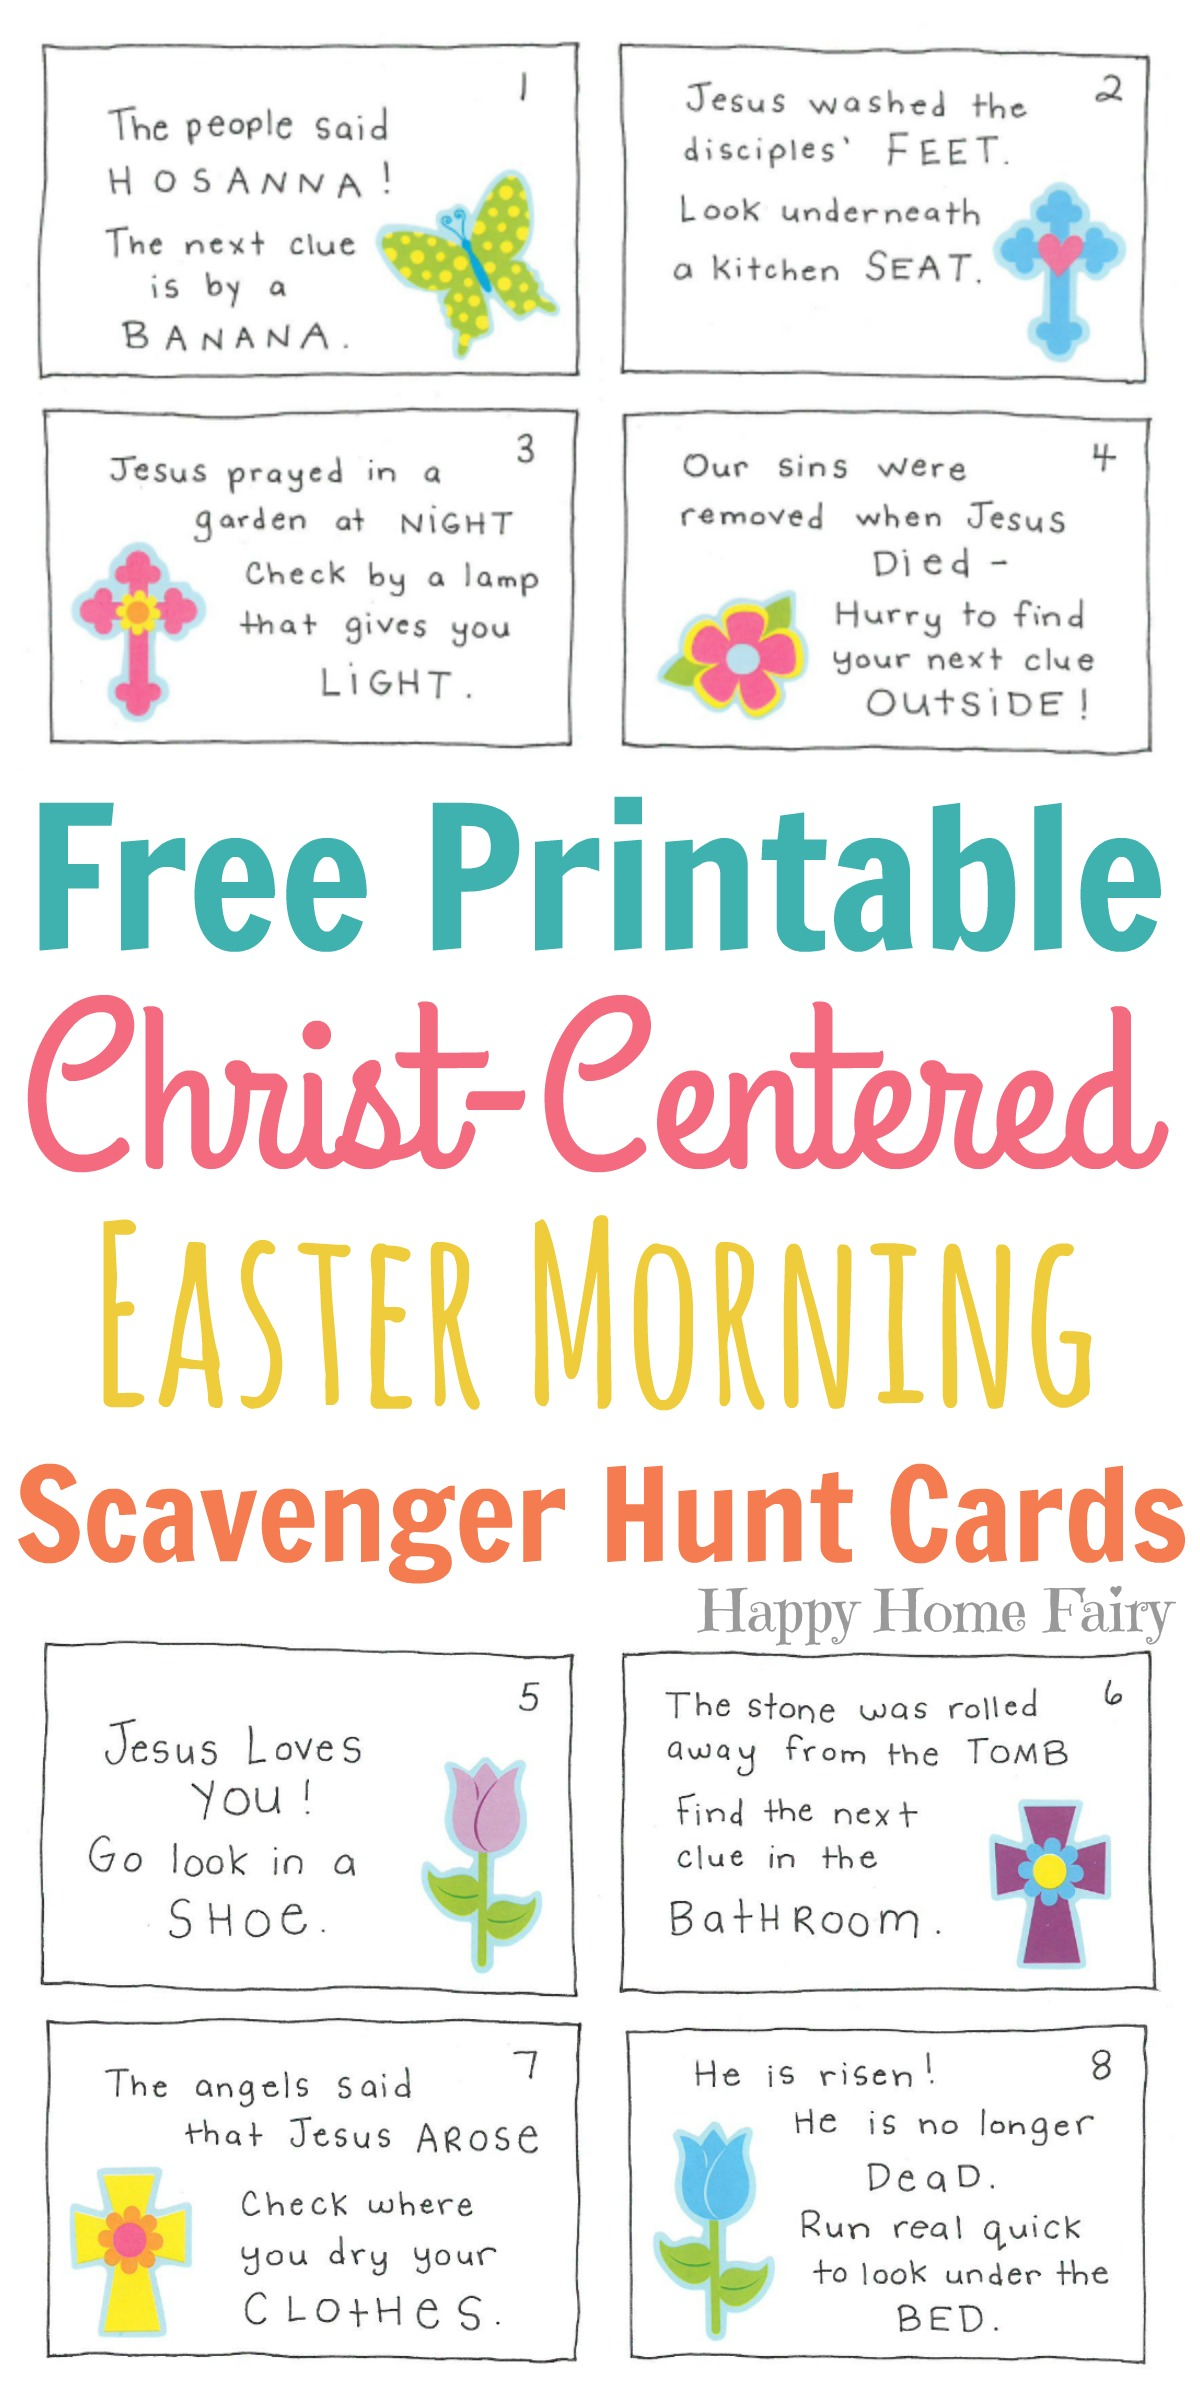 image relating to Free Printable Easter Cards Religious named Christian Easter Plans Archives - Delighted Property Fairy